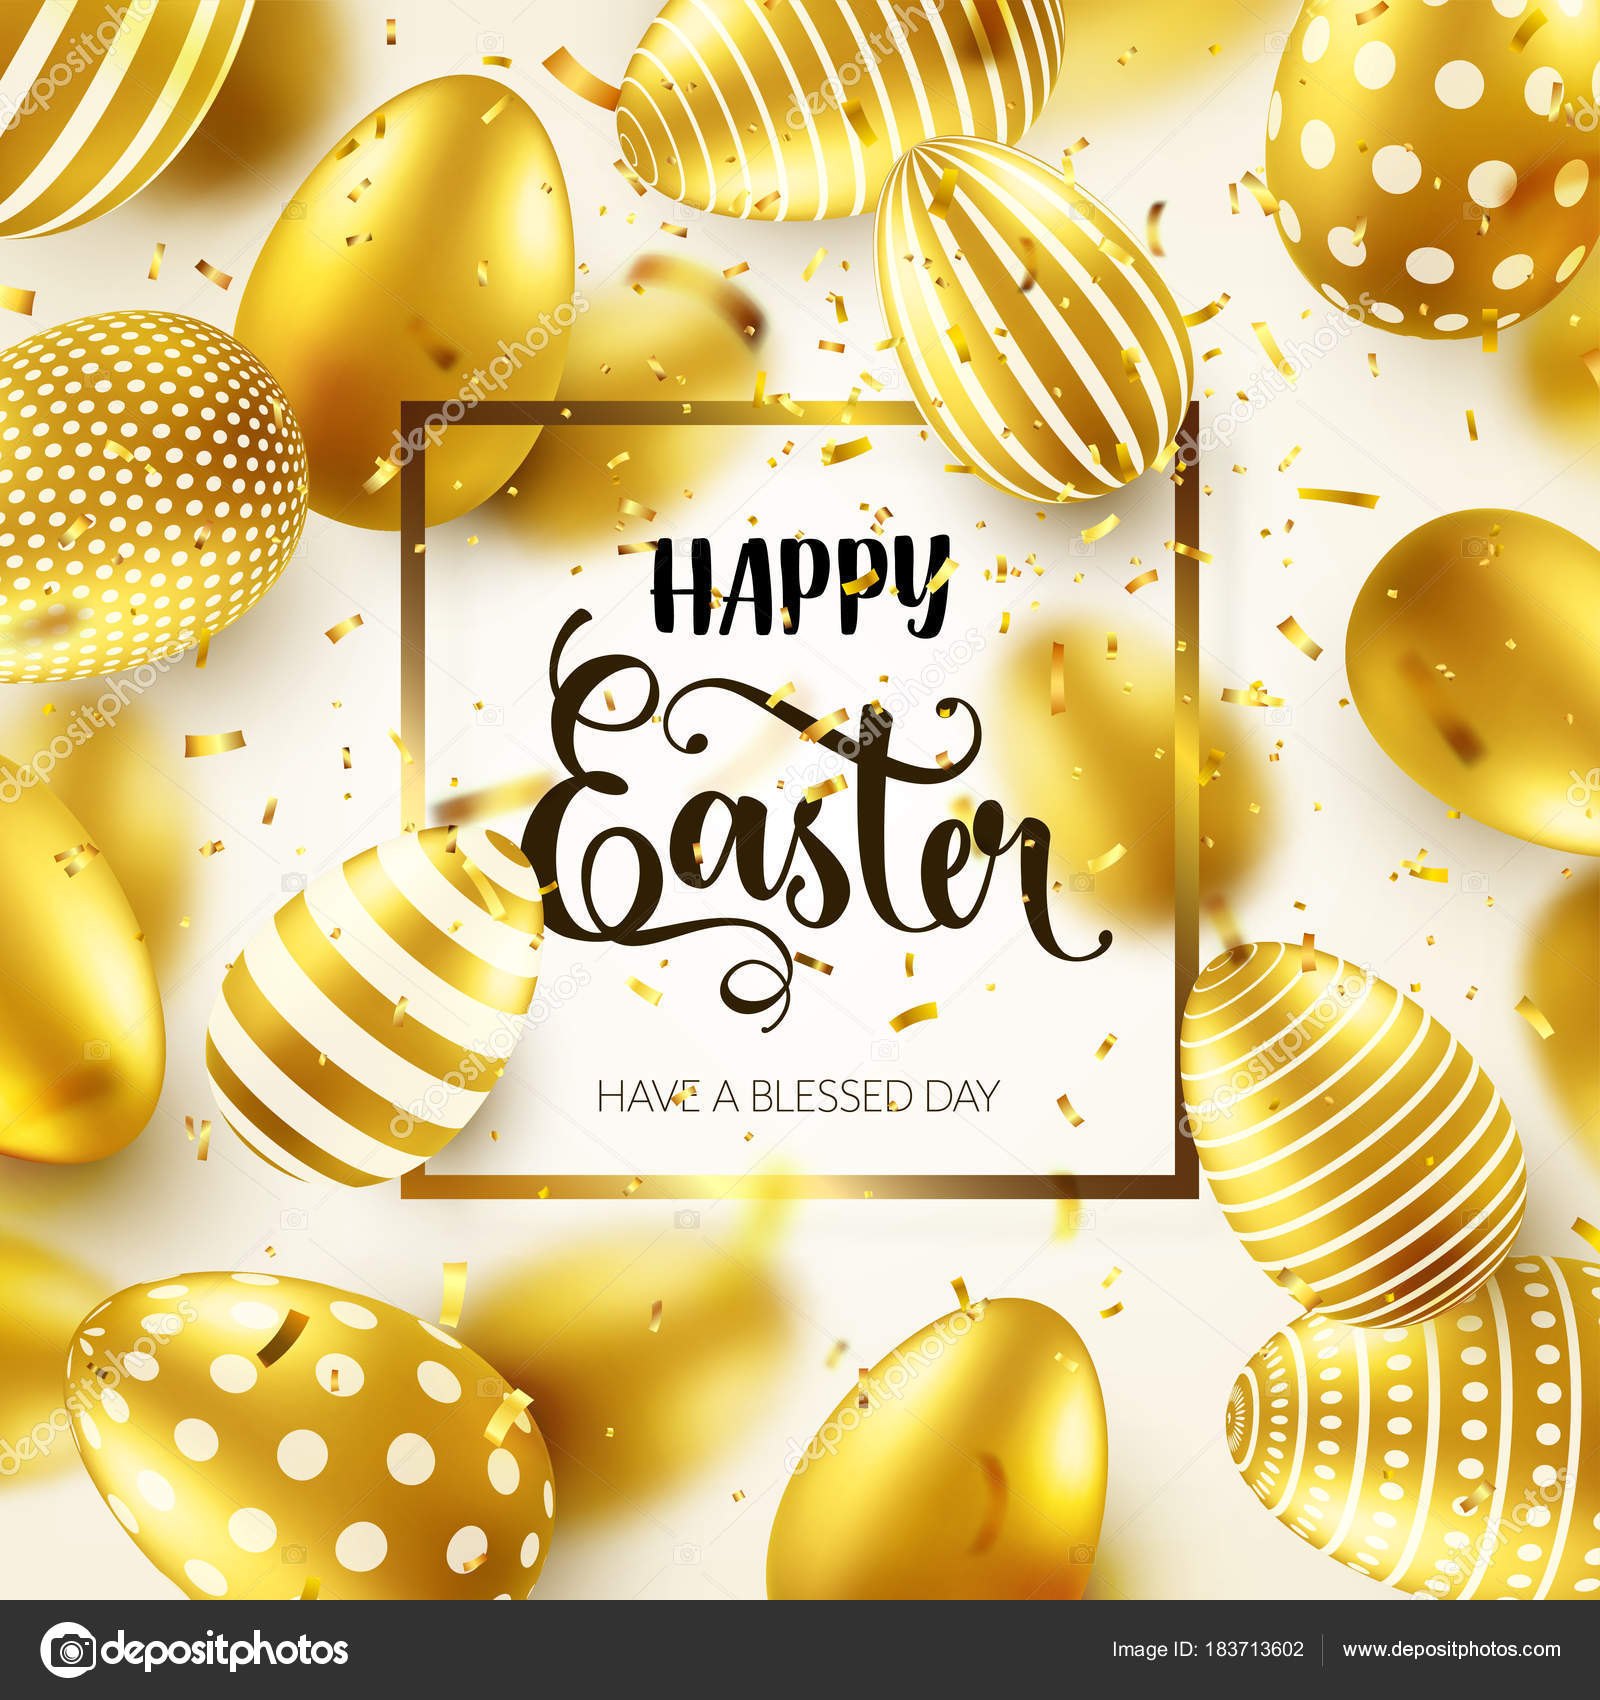 Easter Golden Egg With Calligraphic Lettering Greetings